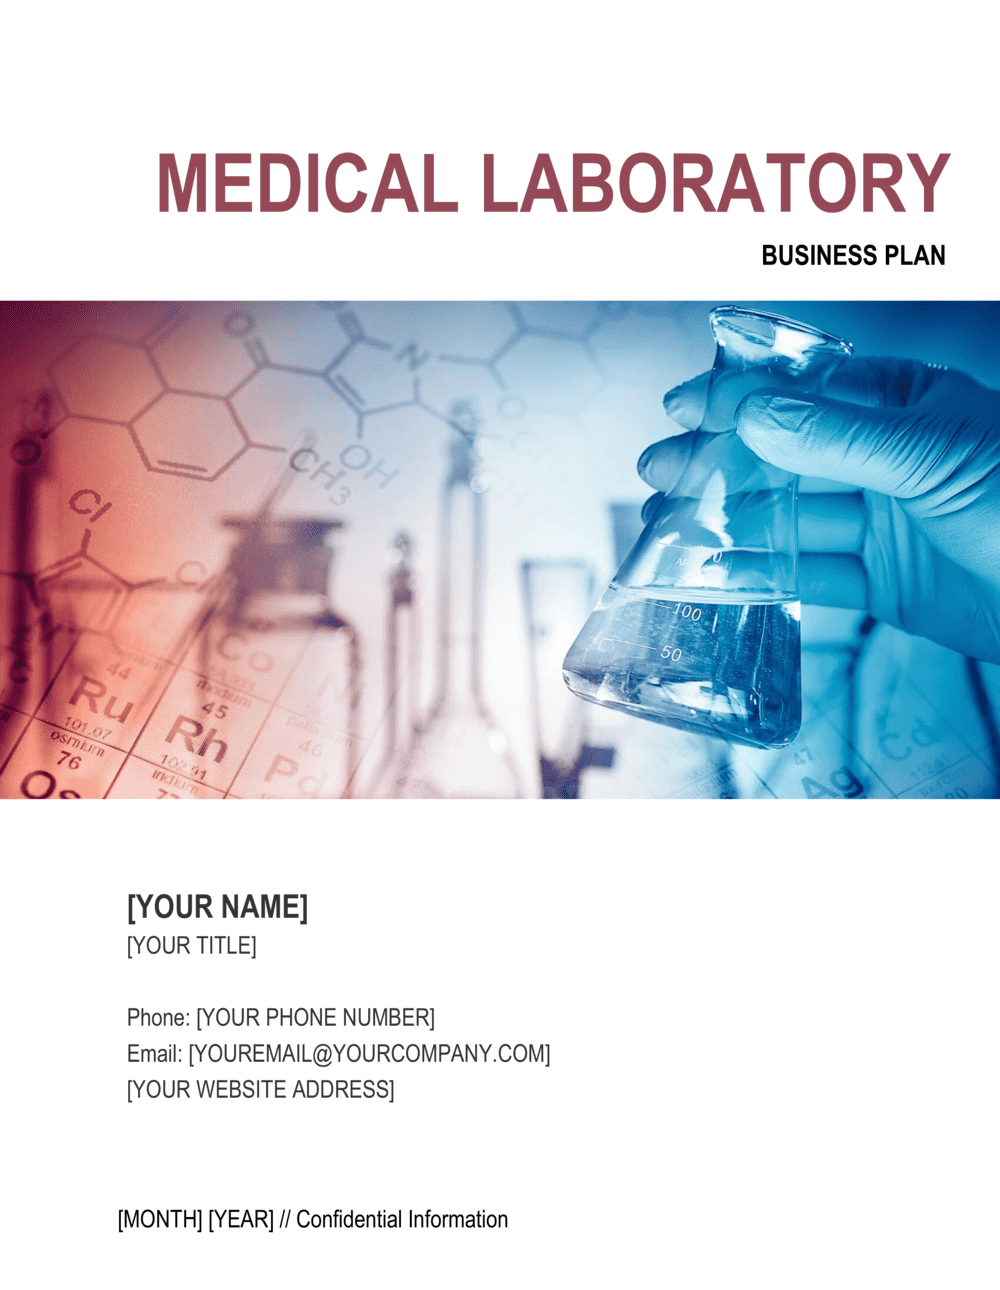 Business-in-a-Box's Medical Laboratory Business Plan Template